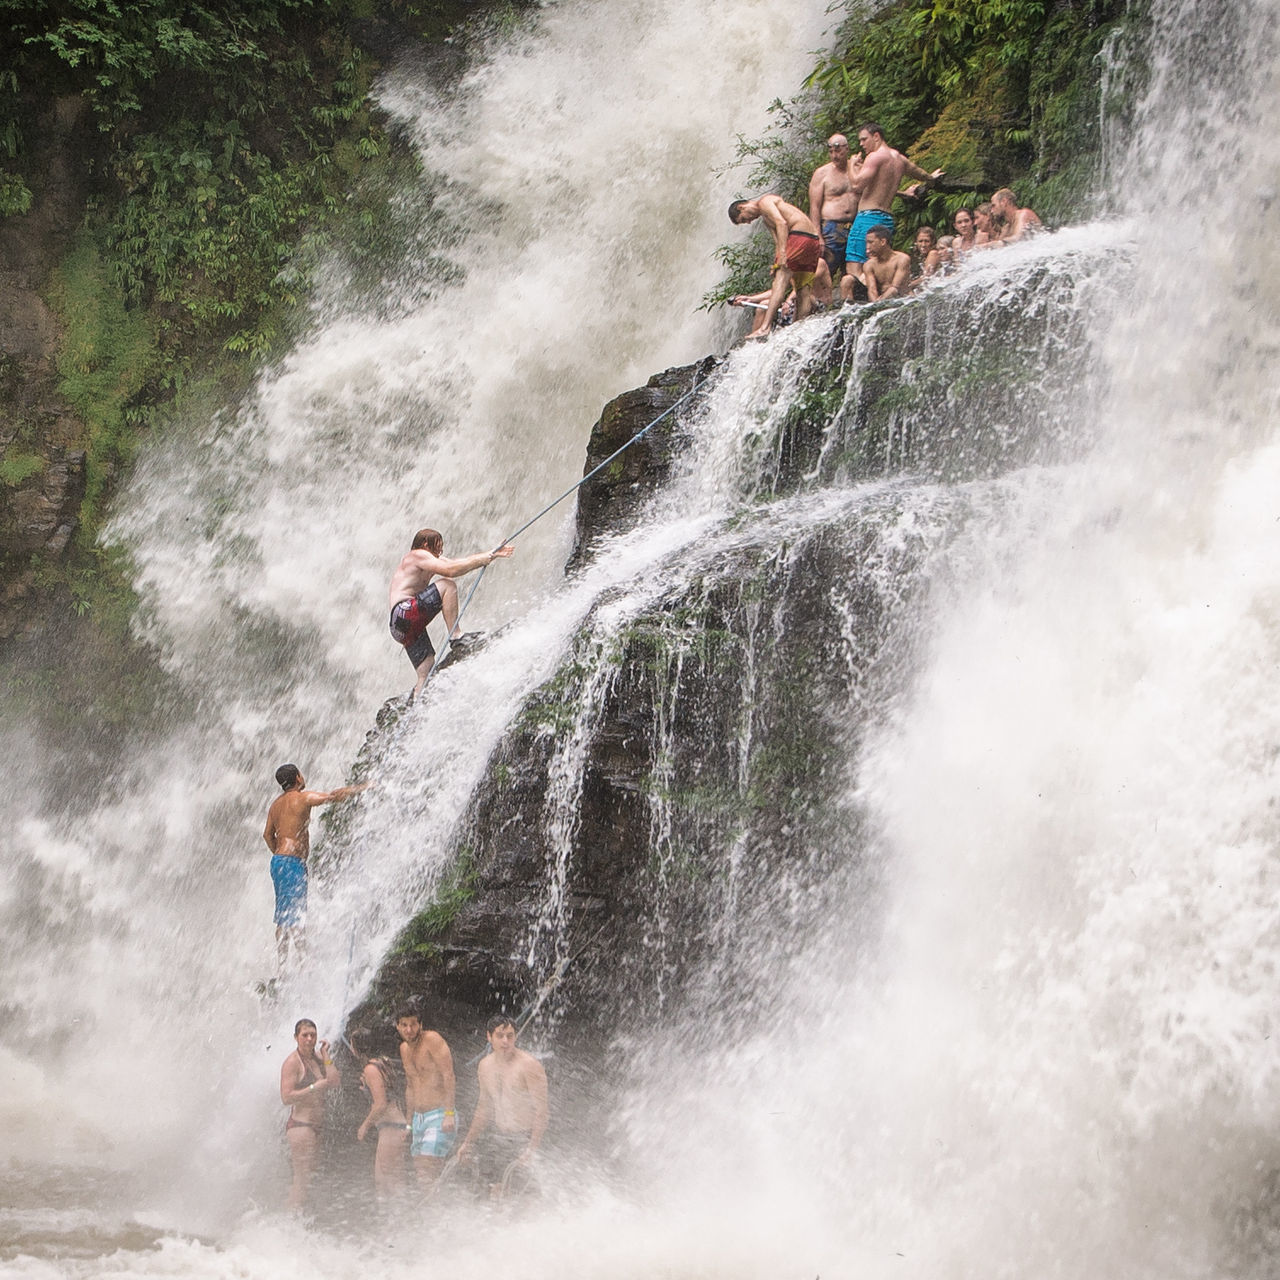 motion, fun, water, splashing, adventure, men, leisure activity, togetherness, day, speed, river, waterfall, real people, enjoyment, risk, outdoors, sitting, group of people, boys, friendship, nature, young adult, people, adult